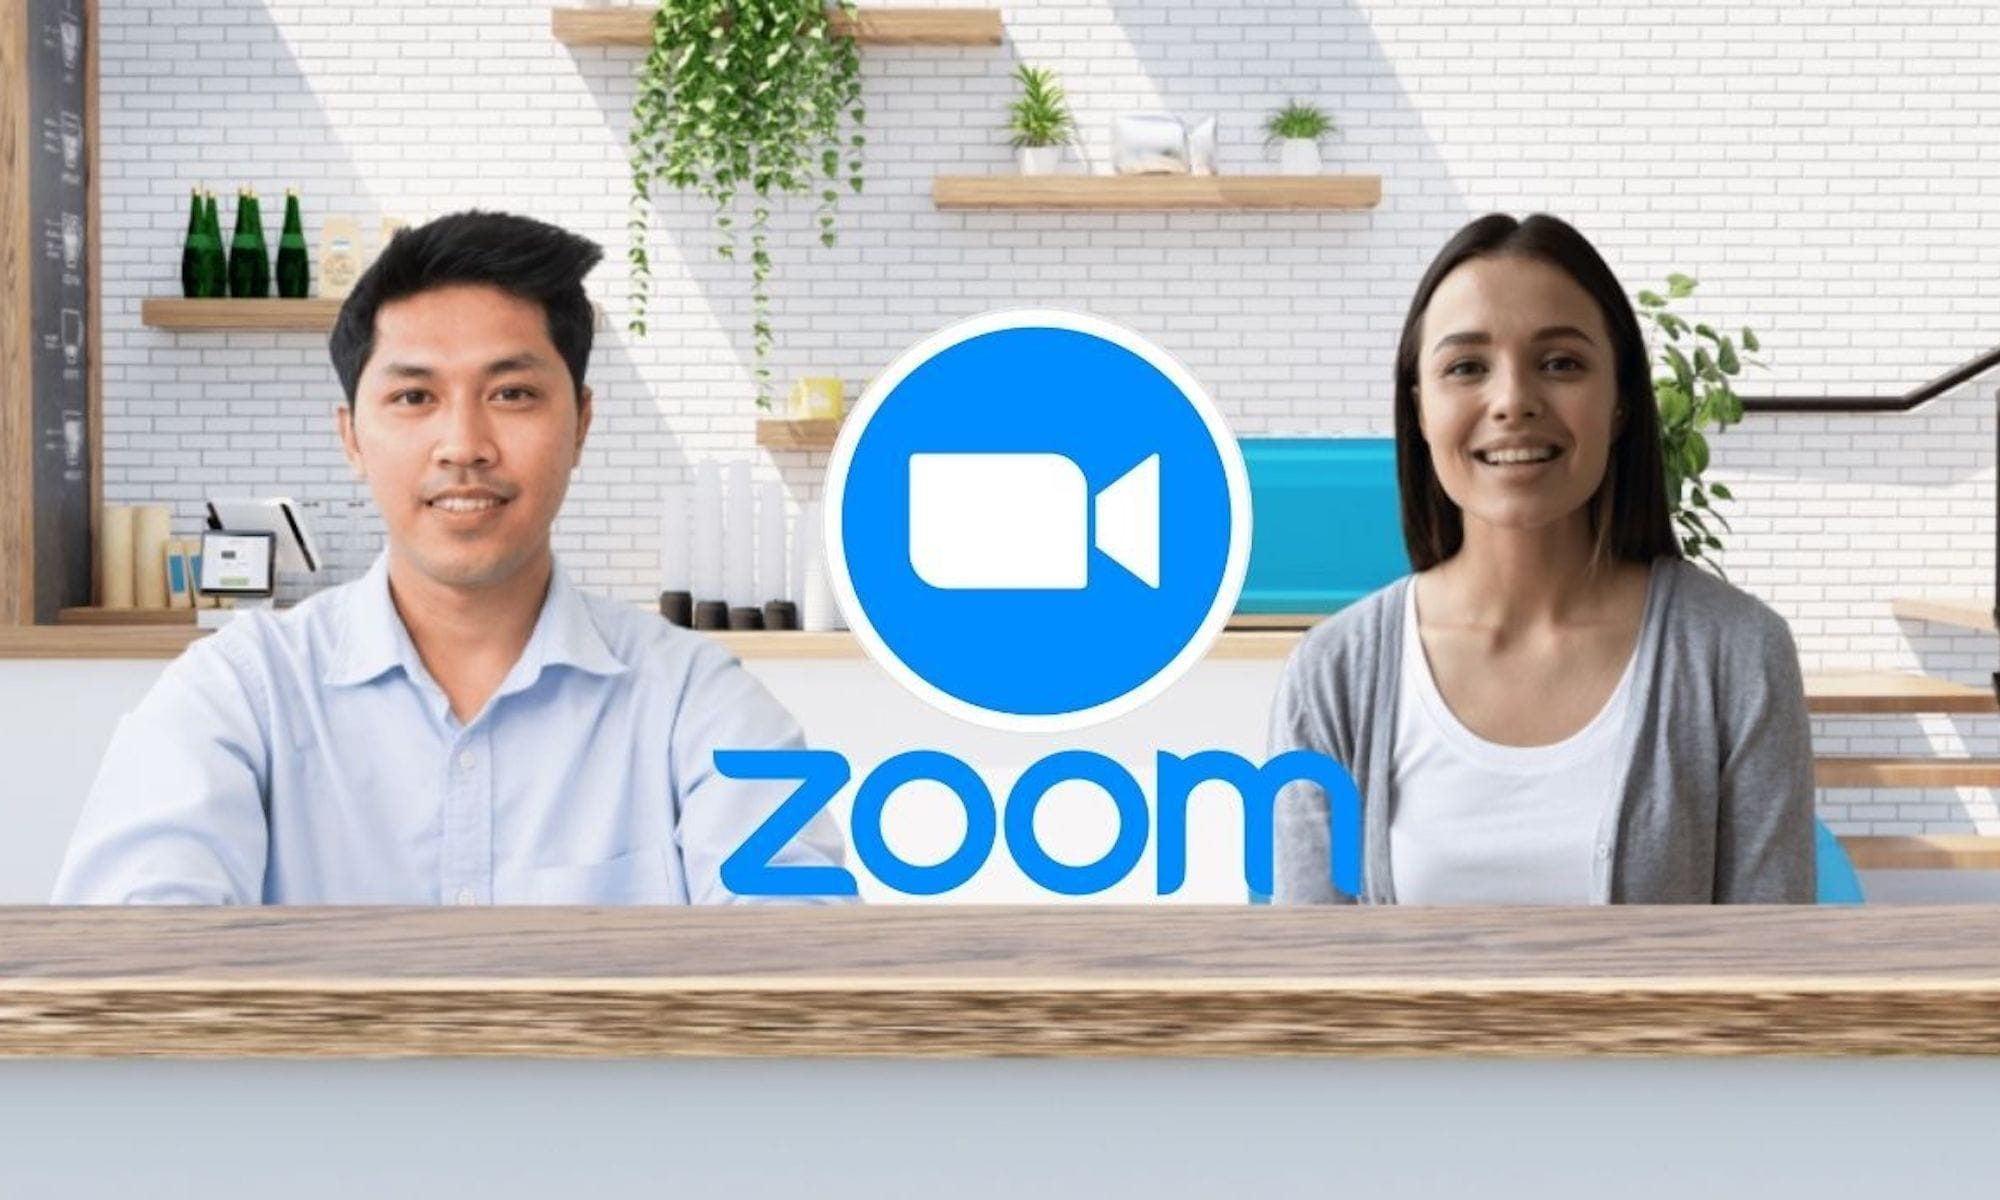 Zoom's Immersive View